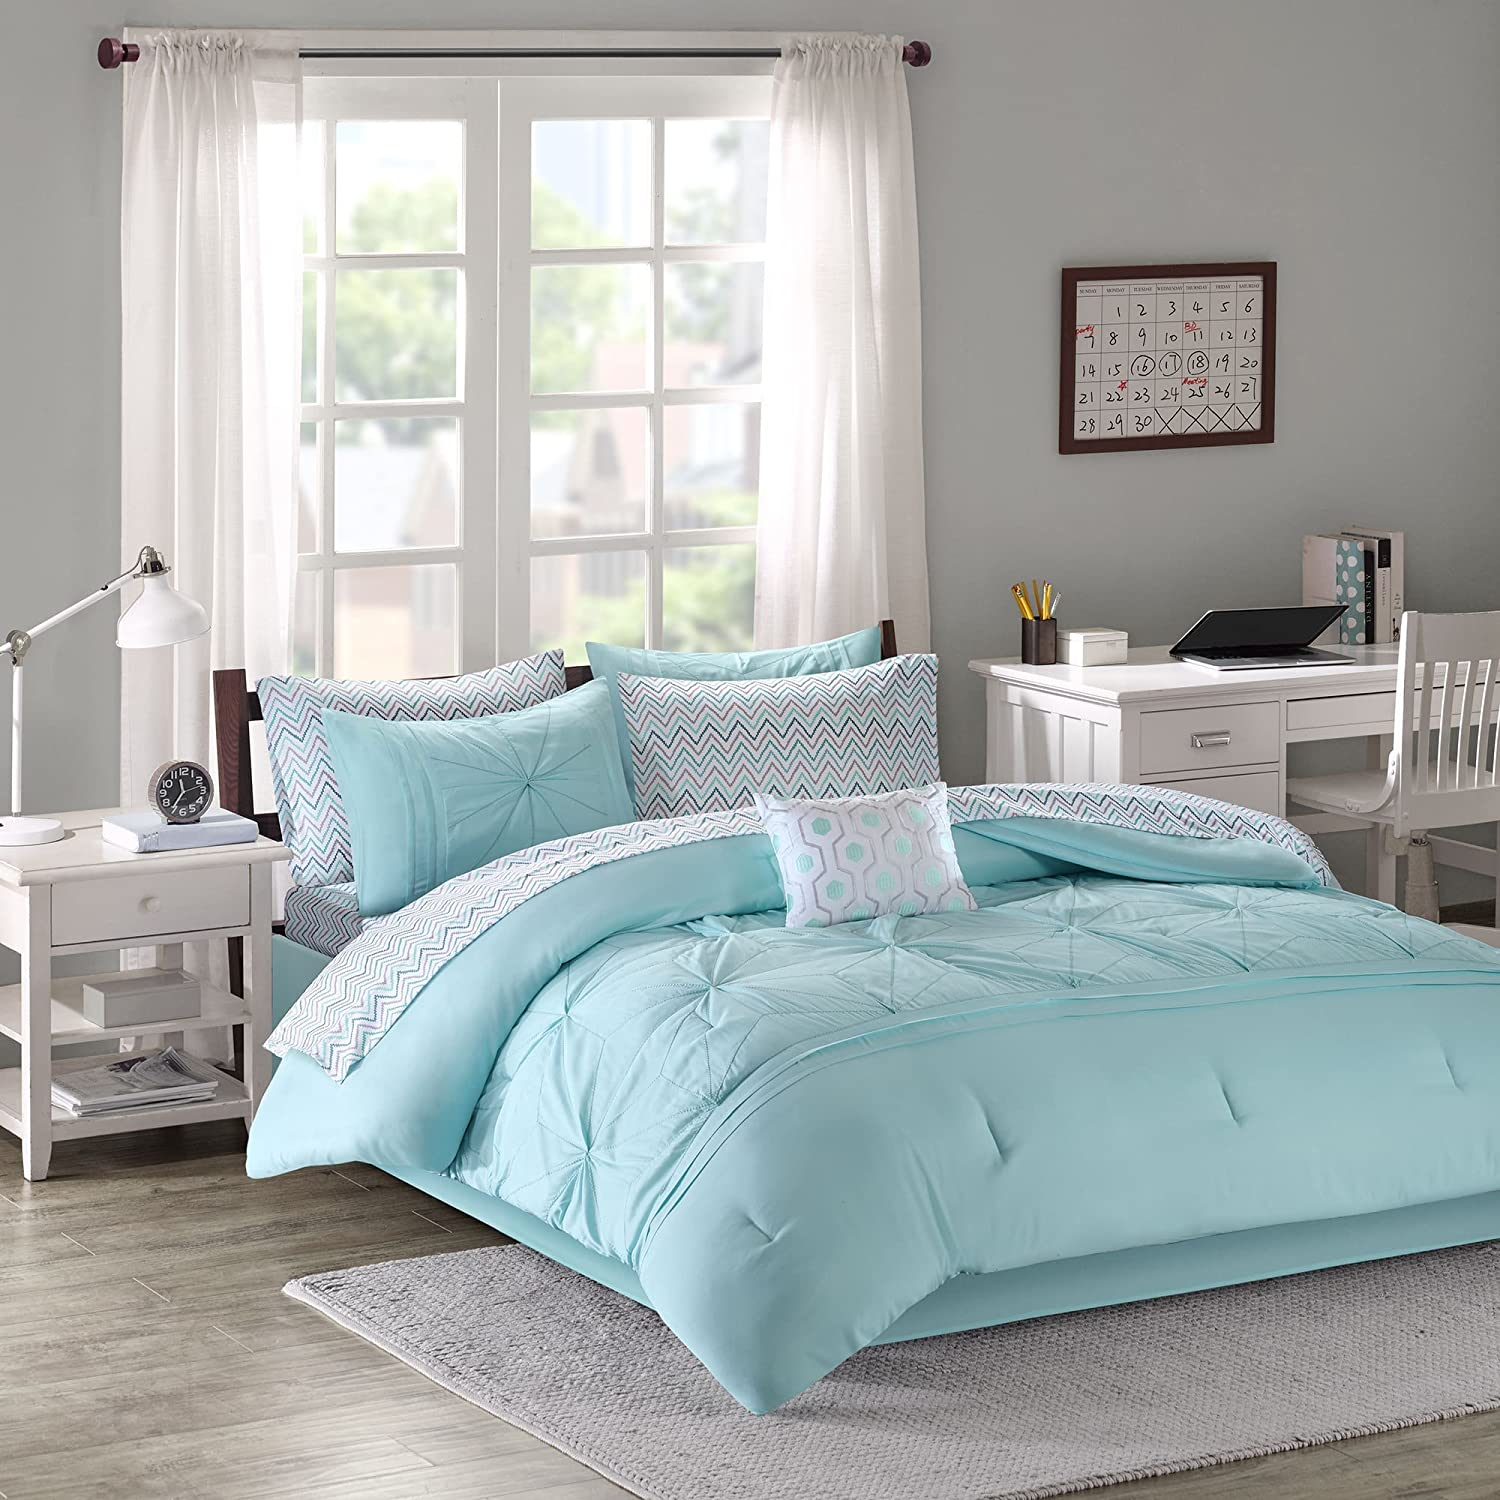 Amazon Com Comforter Sets For Teen Girls Twin Full Queen Kids Bedding Aqua Light Blue Gray Bed In A Bag Perfect For Home Bedrooms Or Dorm Rooms Bundle Includes Exclusive Sleep Mask From